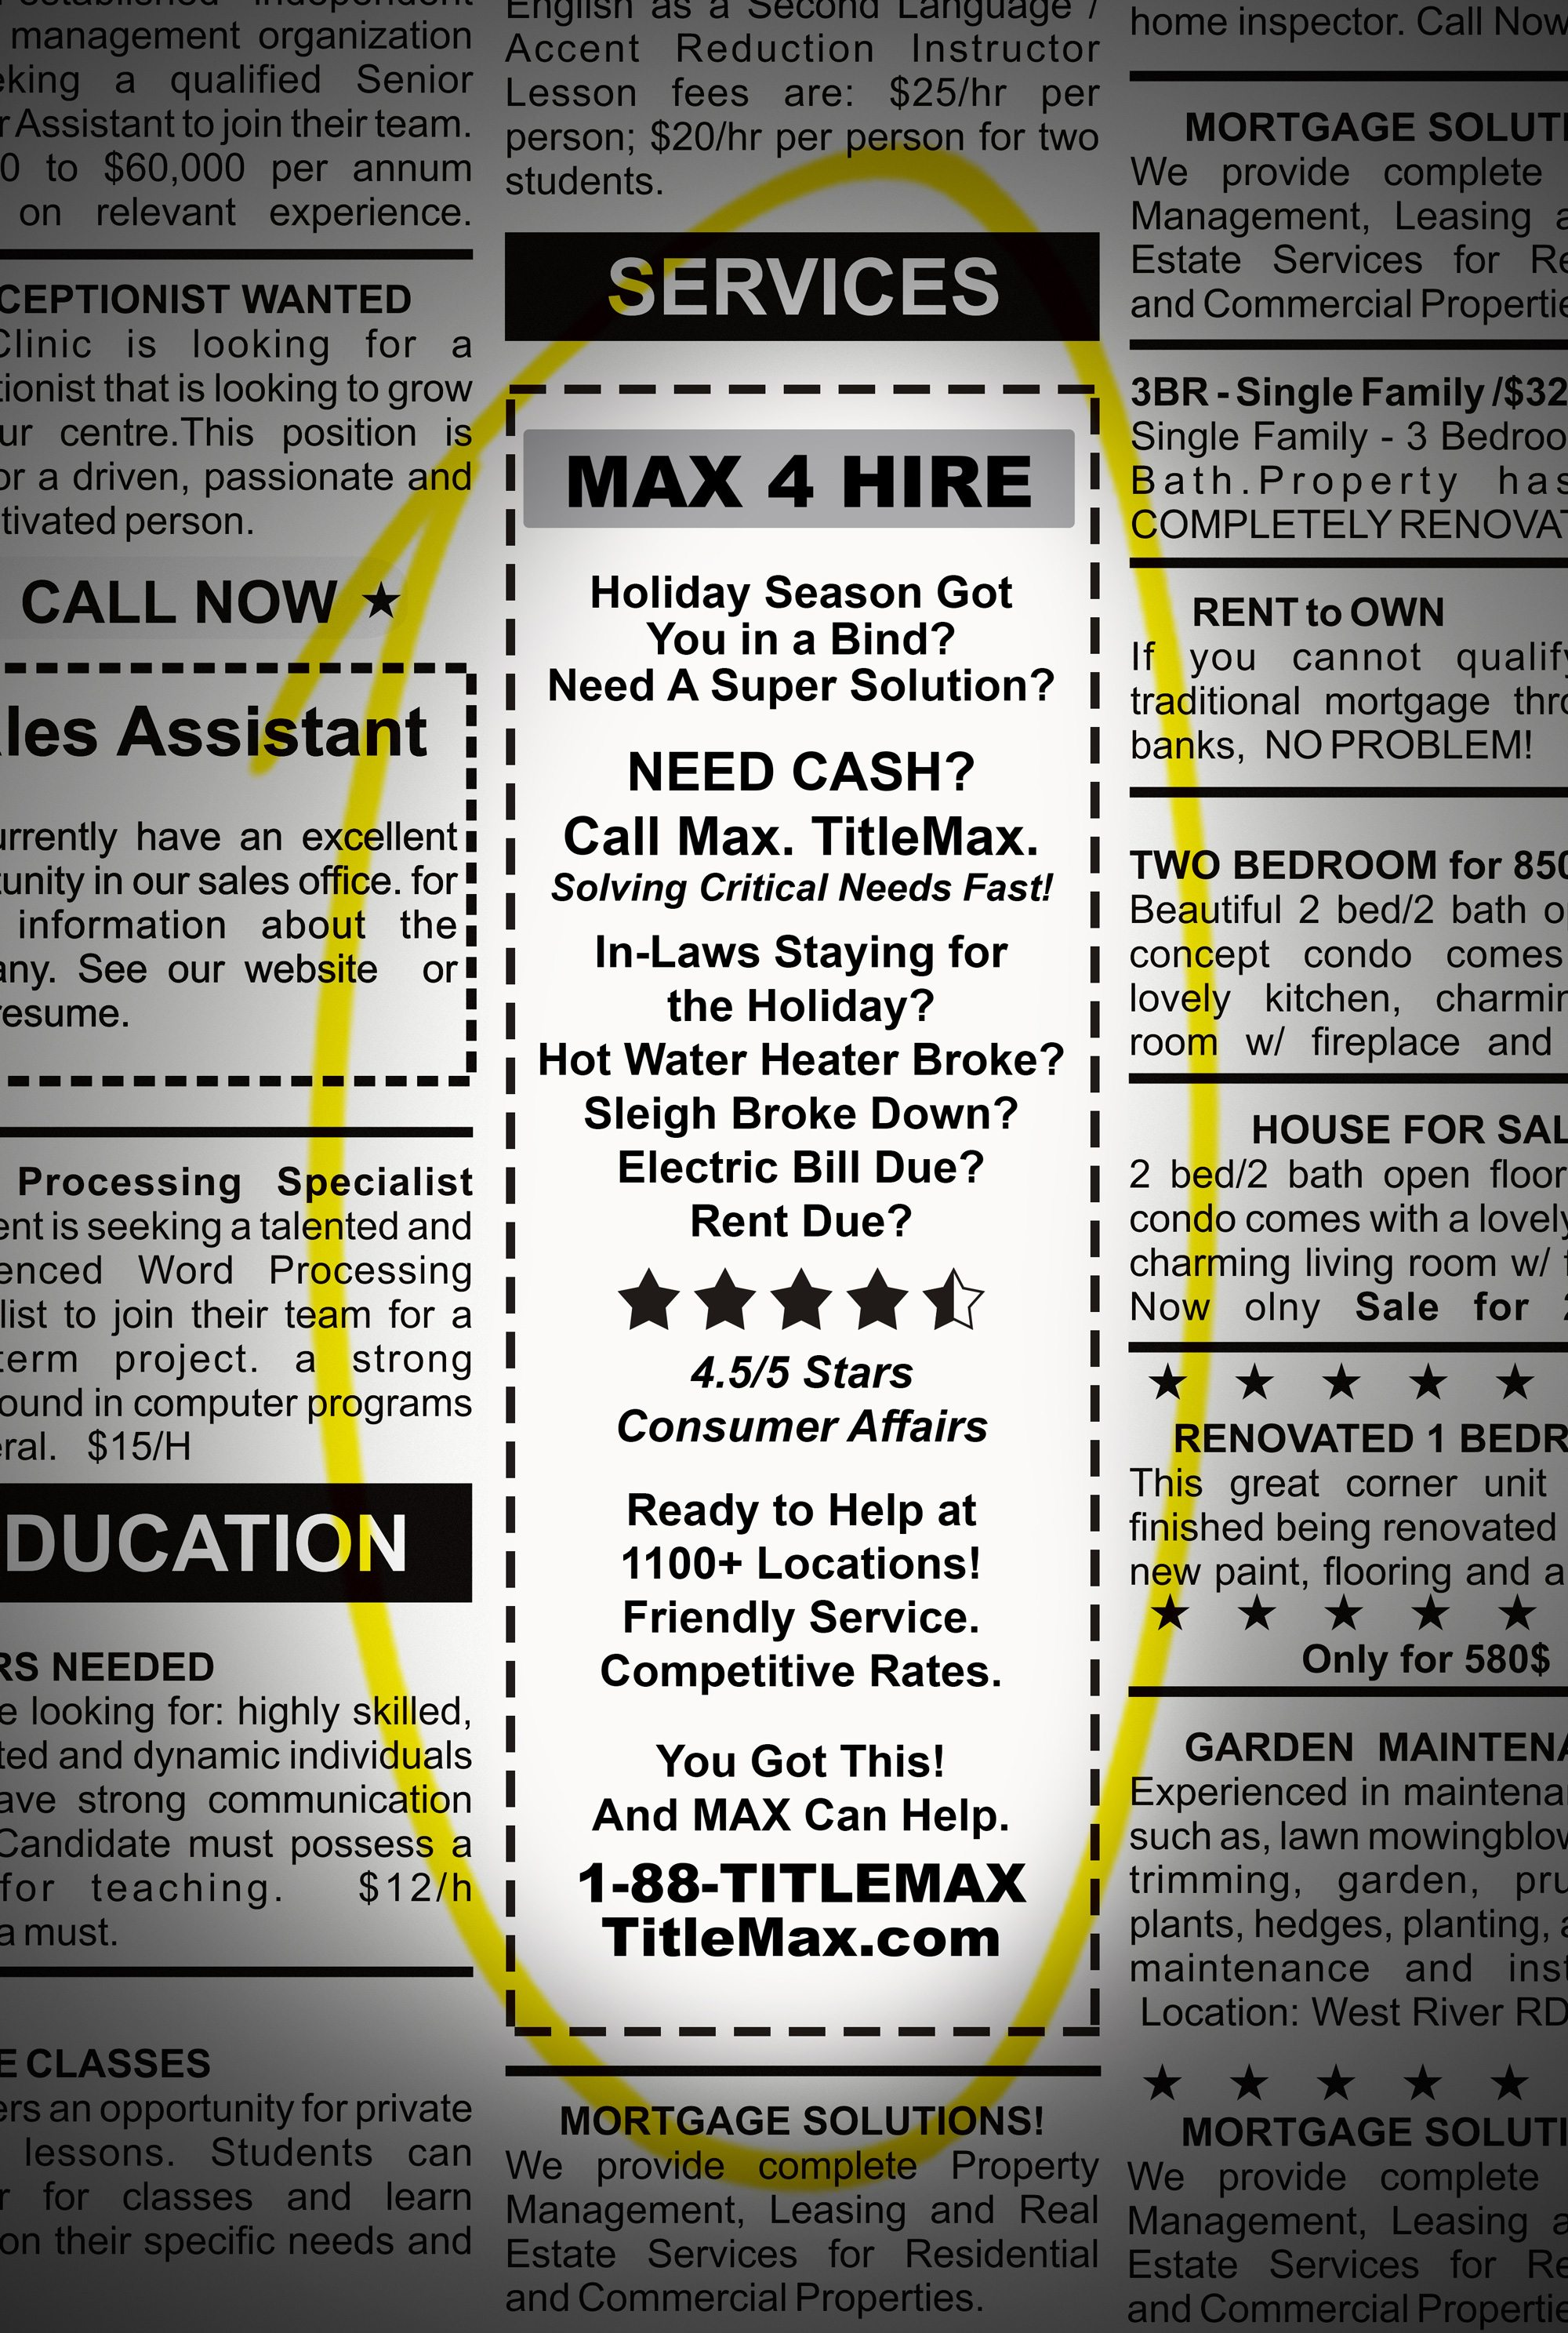 Max 4 Hire. Mighty Max to the rescue!